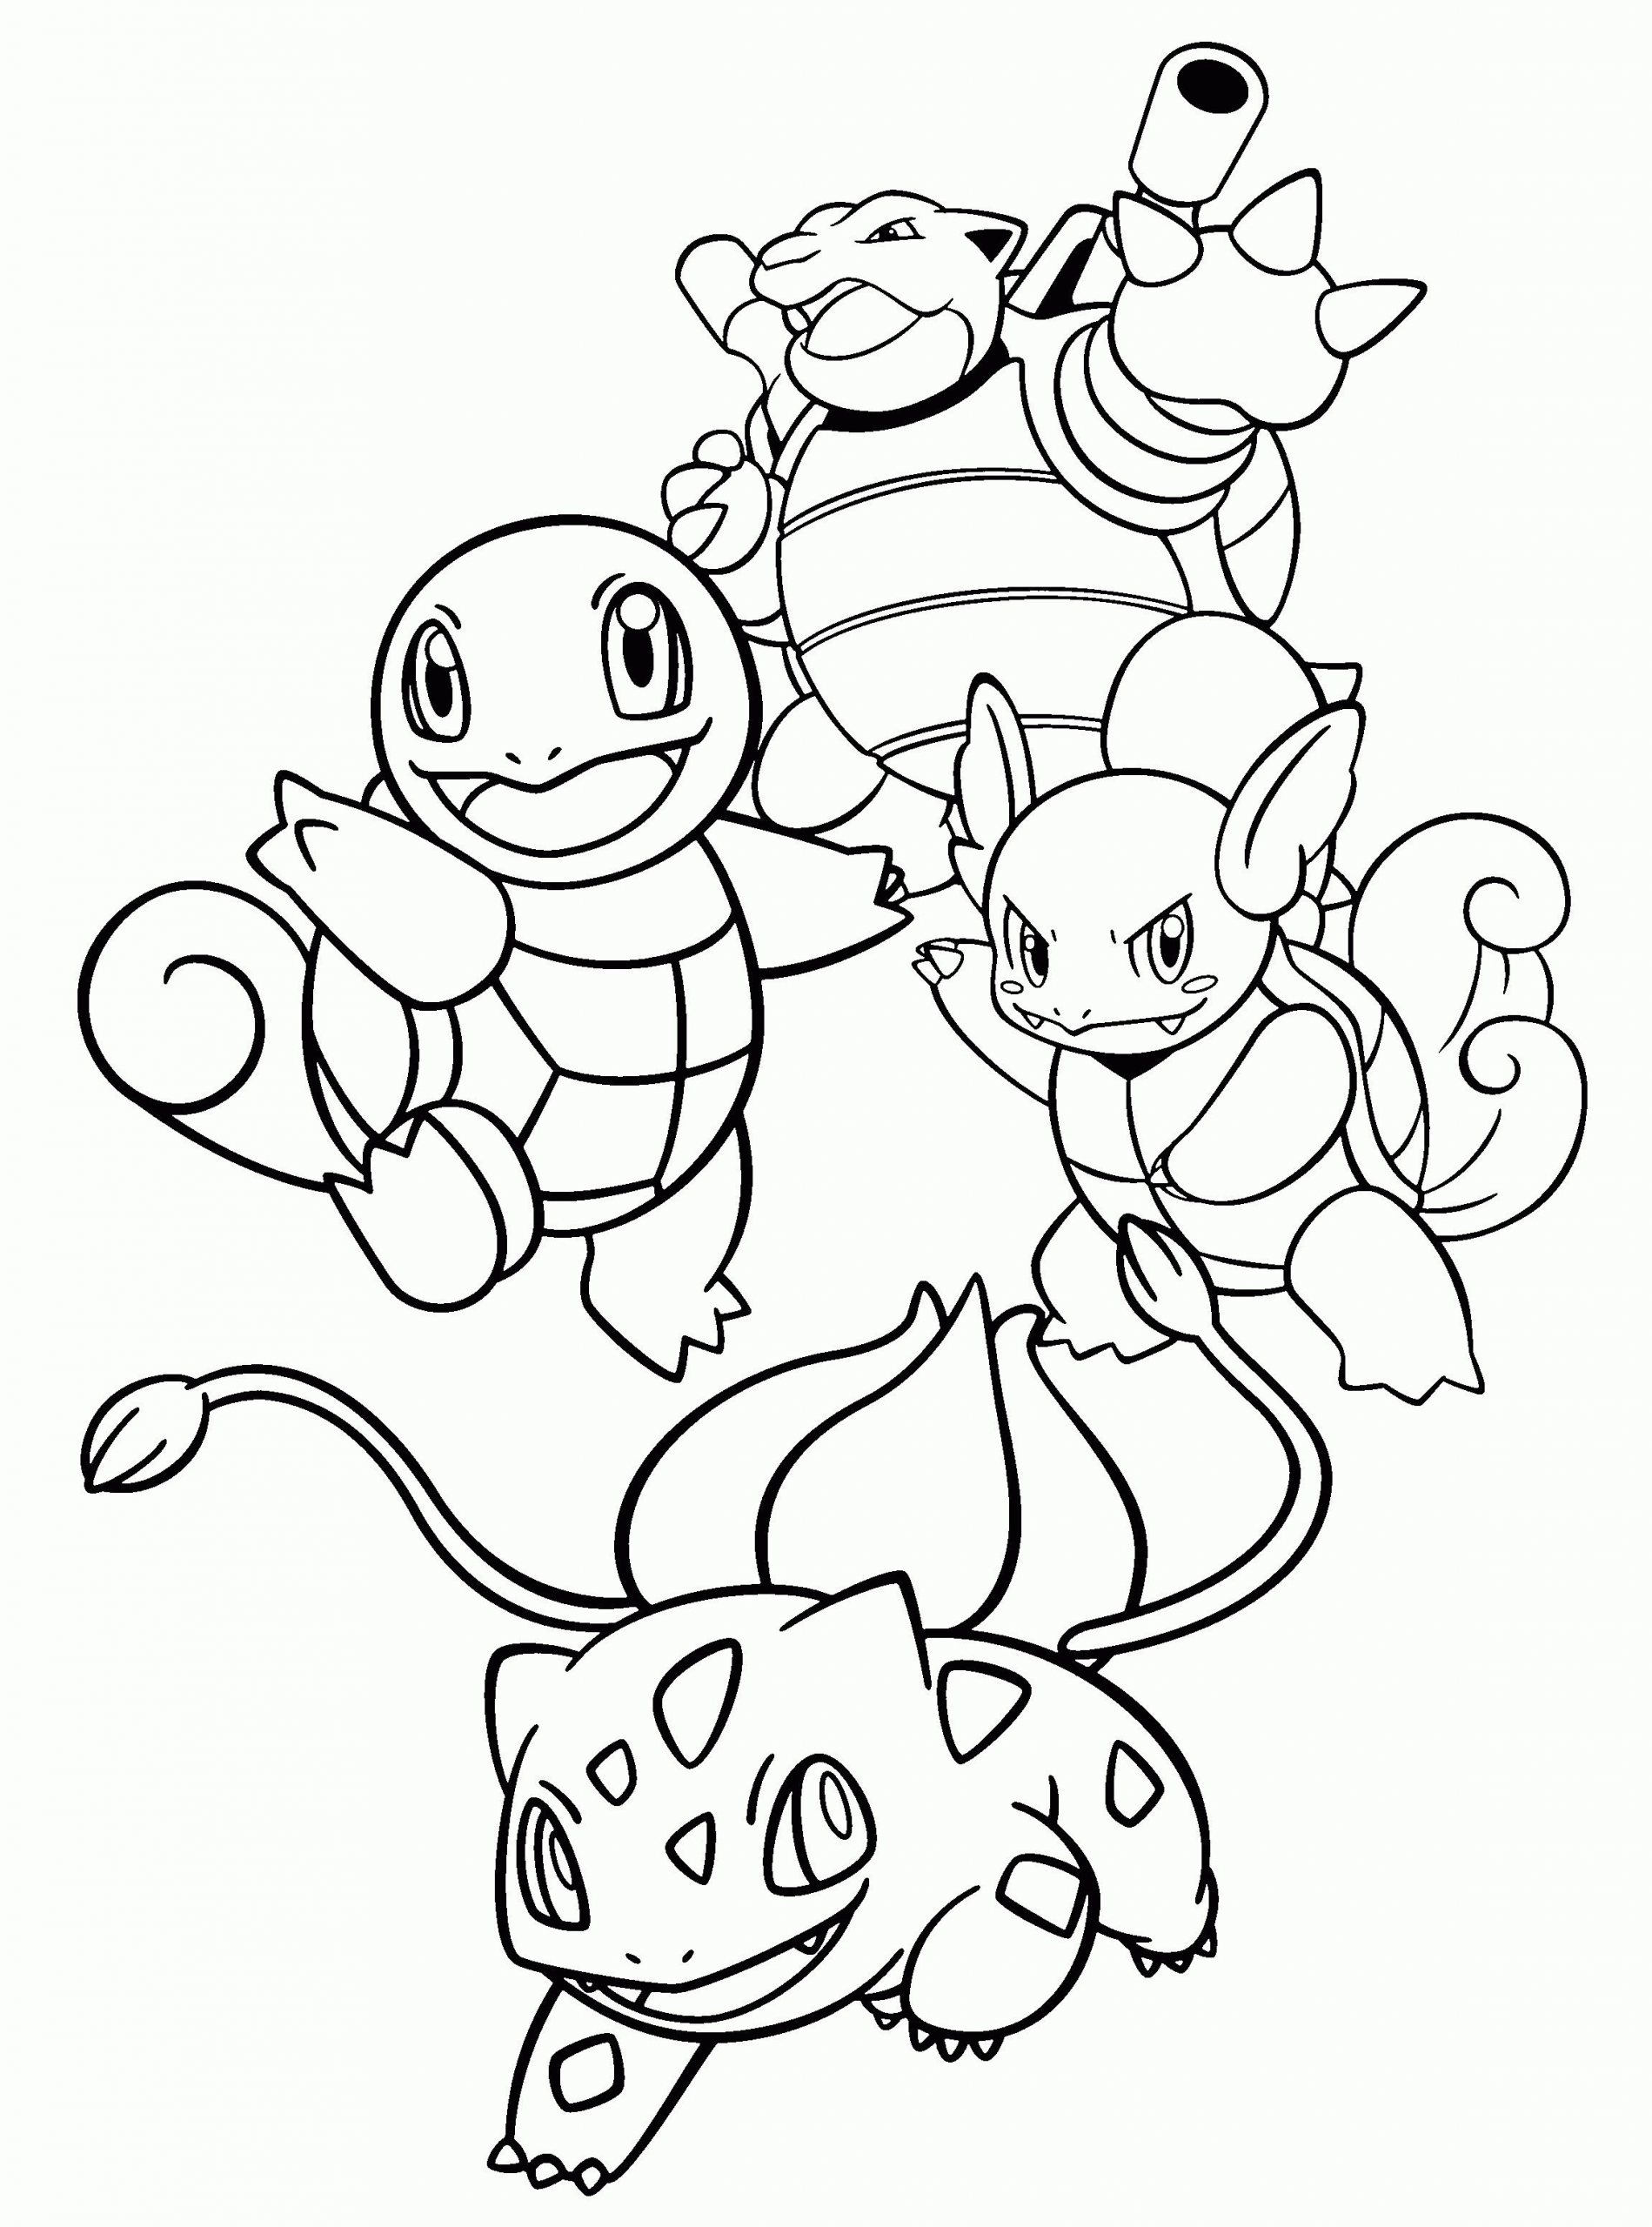 squirtle and pikachu coloring page squirtle pokemon coloring page youngandtaecom in 2020 page squirtle and coloring pikachu